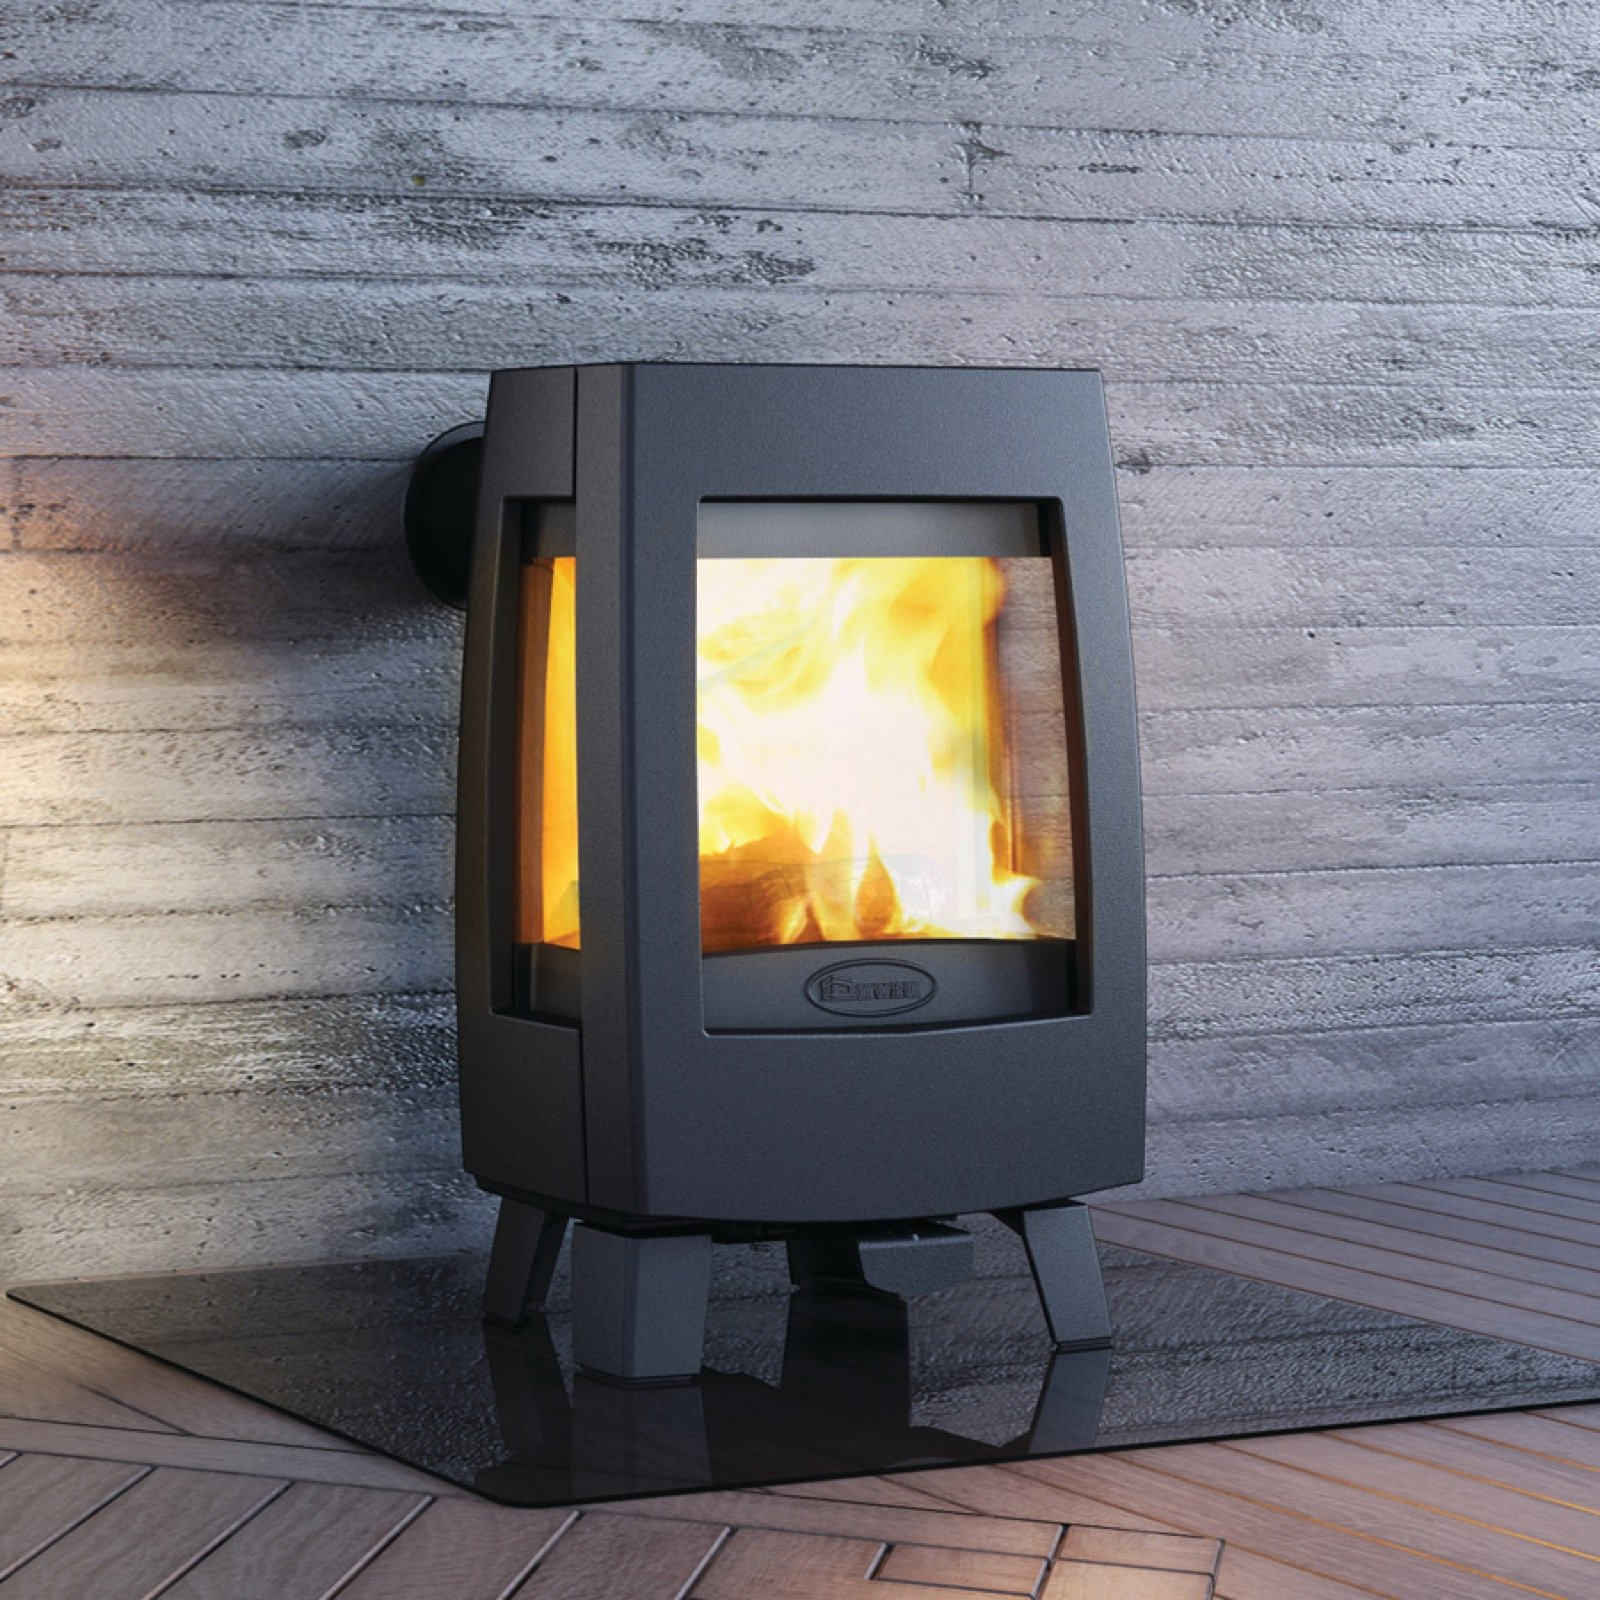 Dovre Sense 113 Wood Burning Stove With Glass Sides And